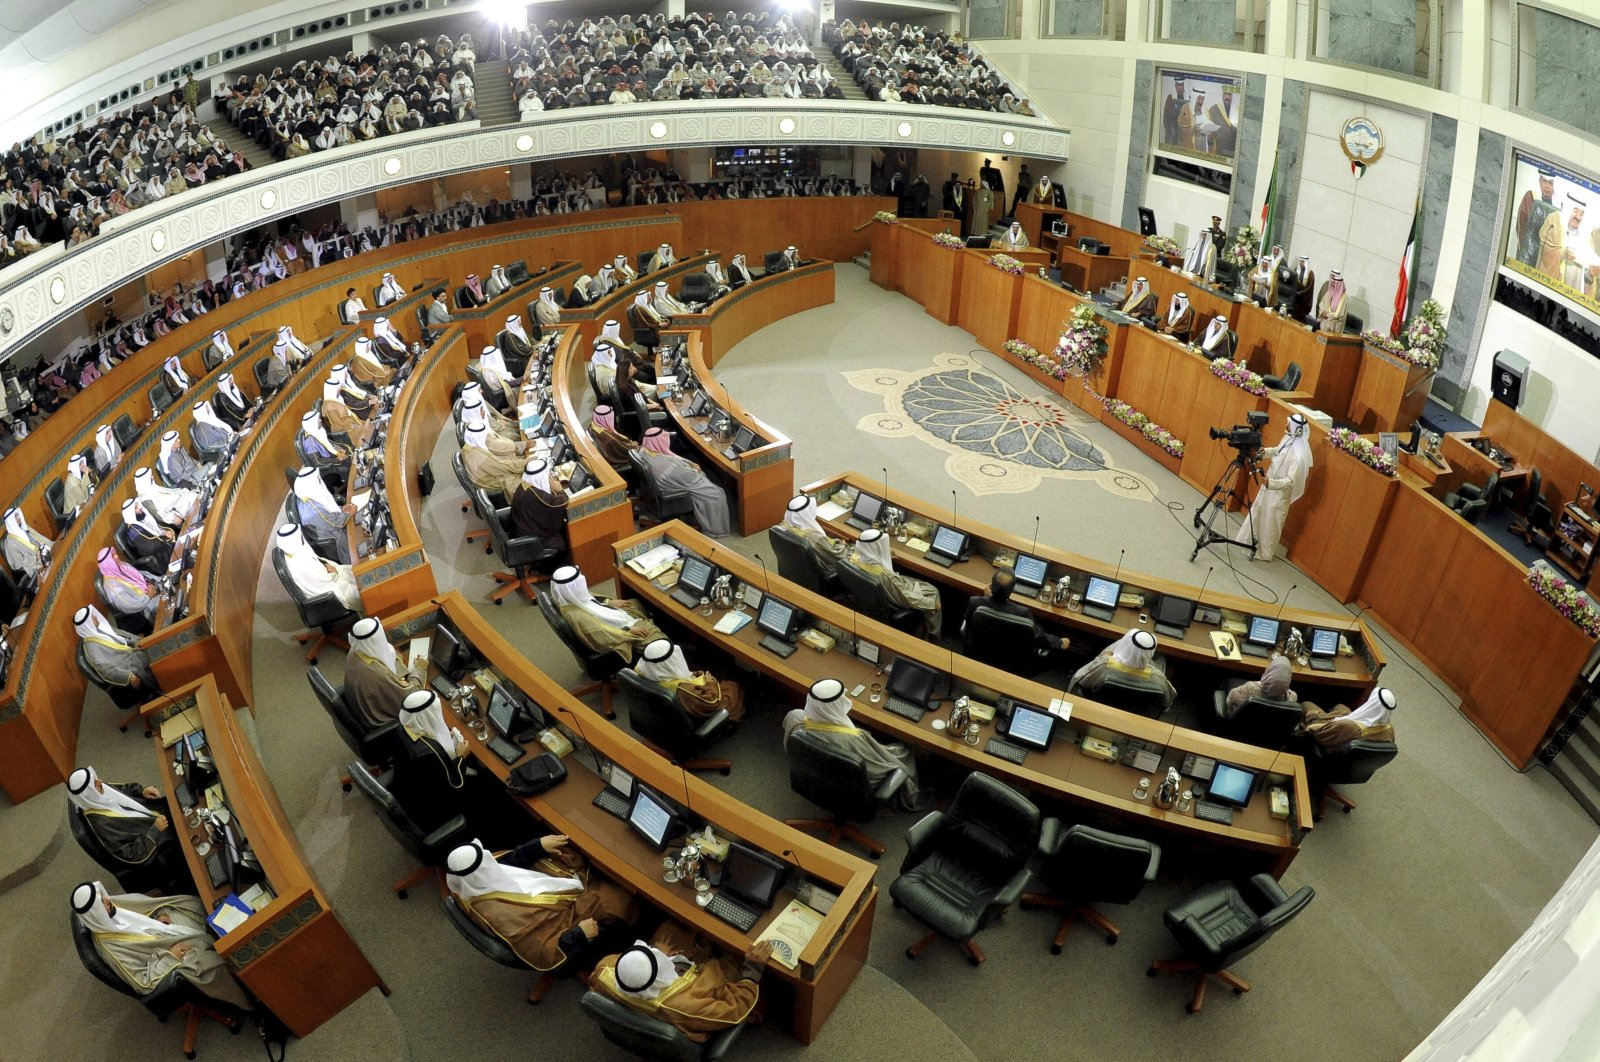 A general view of the National Assembly during the inauguration of the 14th Legislative Term of the National Assembly in Kuwait City, Kuwait, Dec. 16, 2012. (AP Photo)